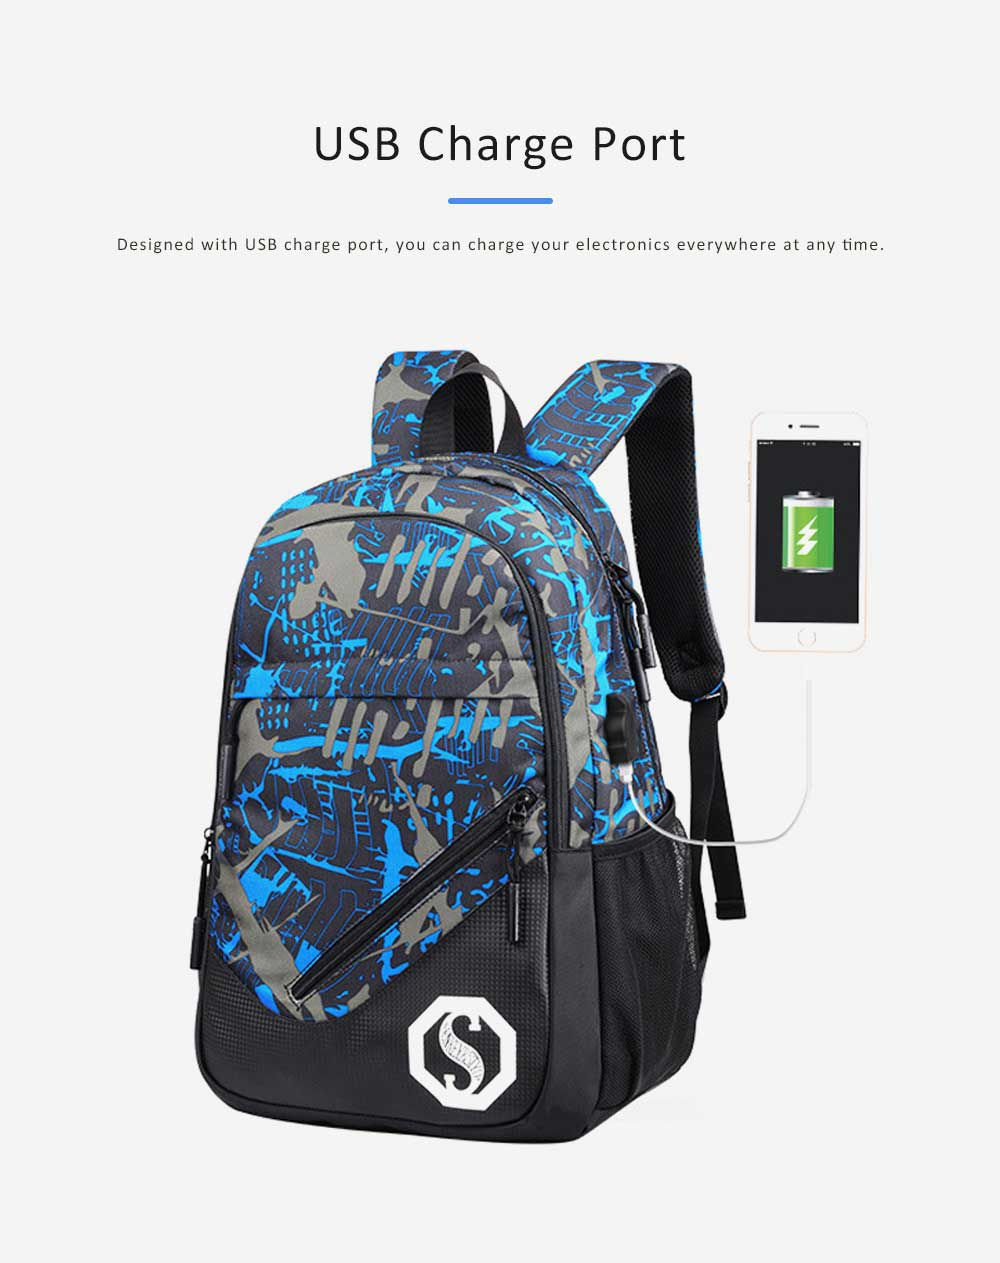 USB Charge Port Backpack for Notebook, Laptop, Waterproof Oxford School Bag for Students, Traveling 2